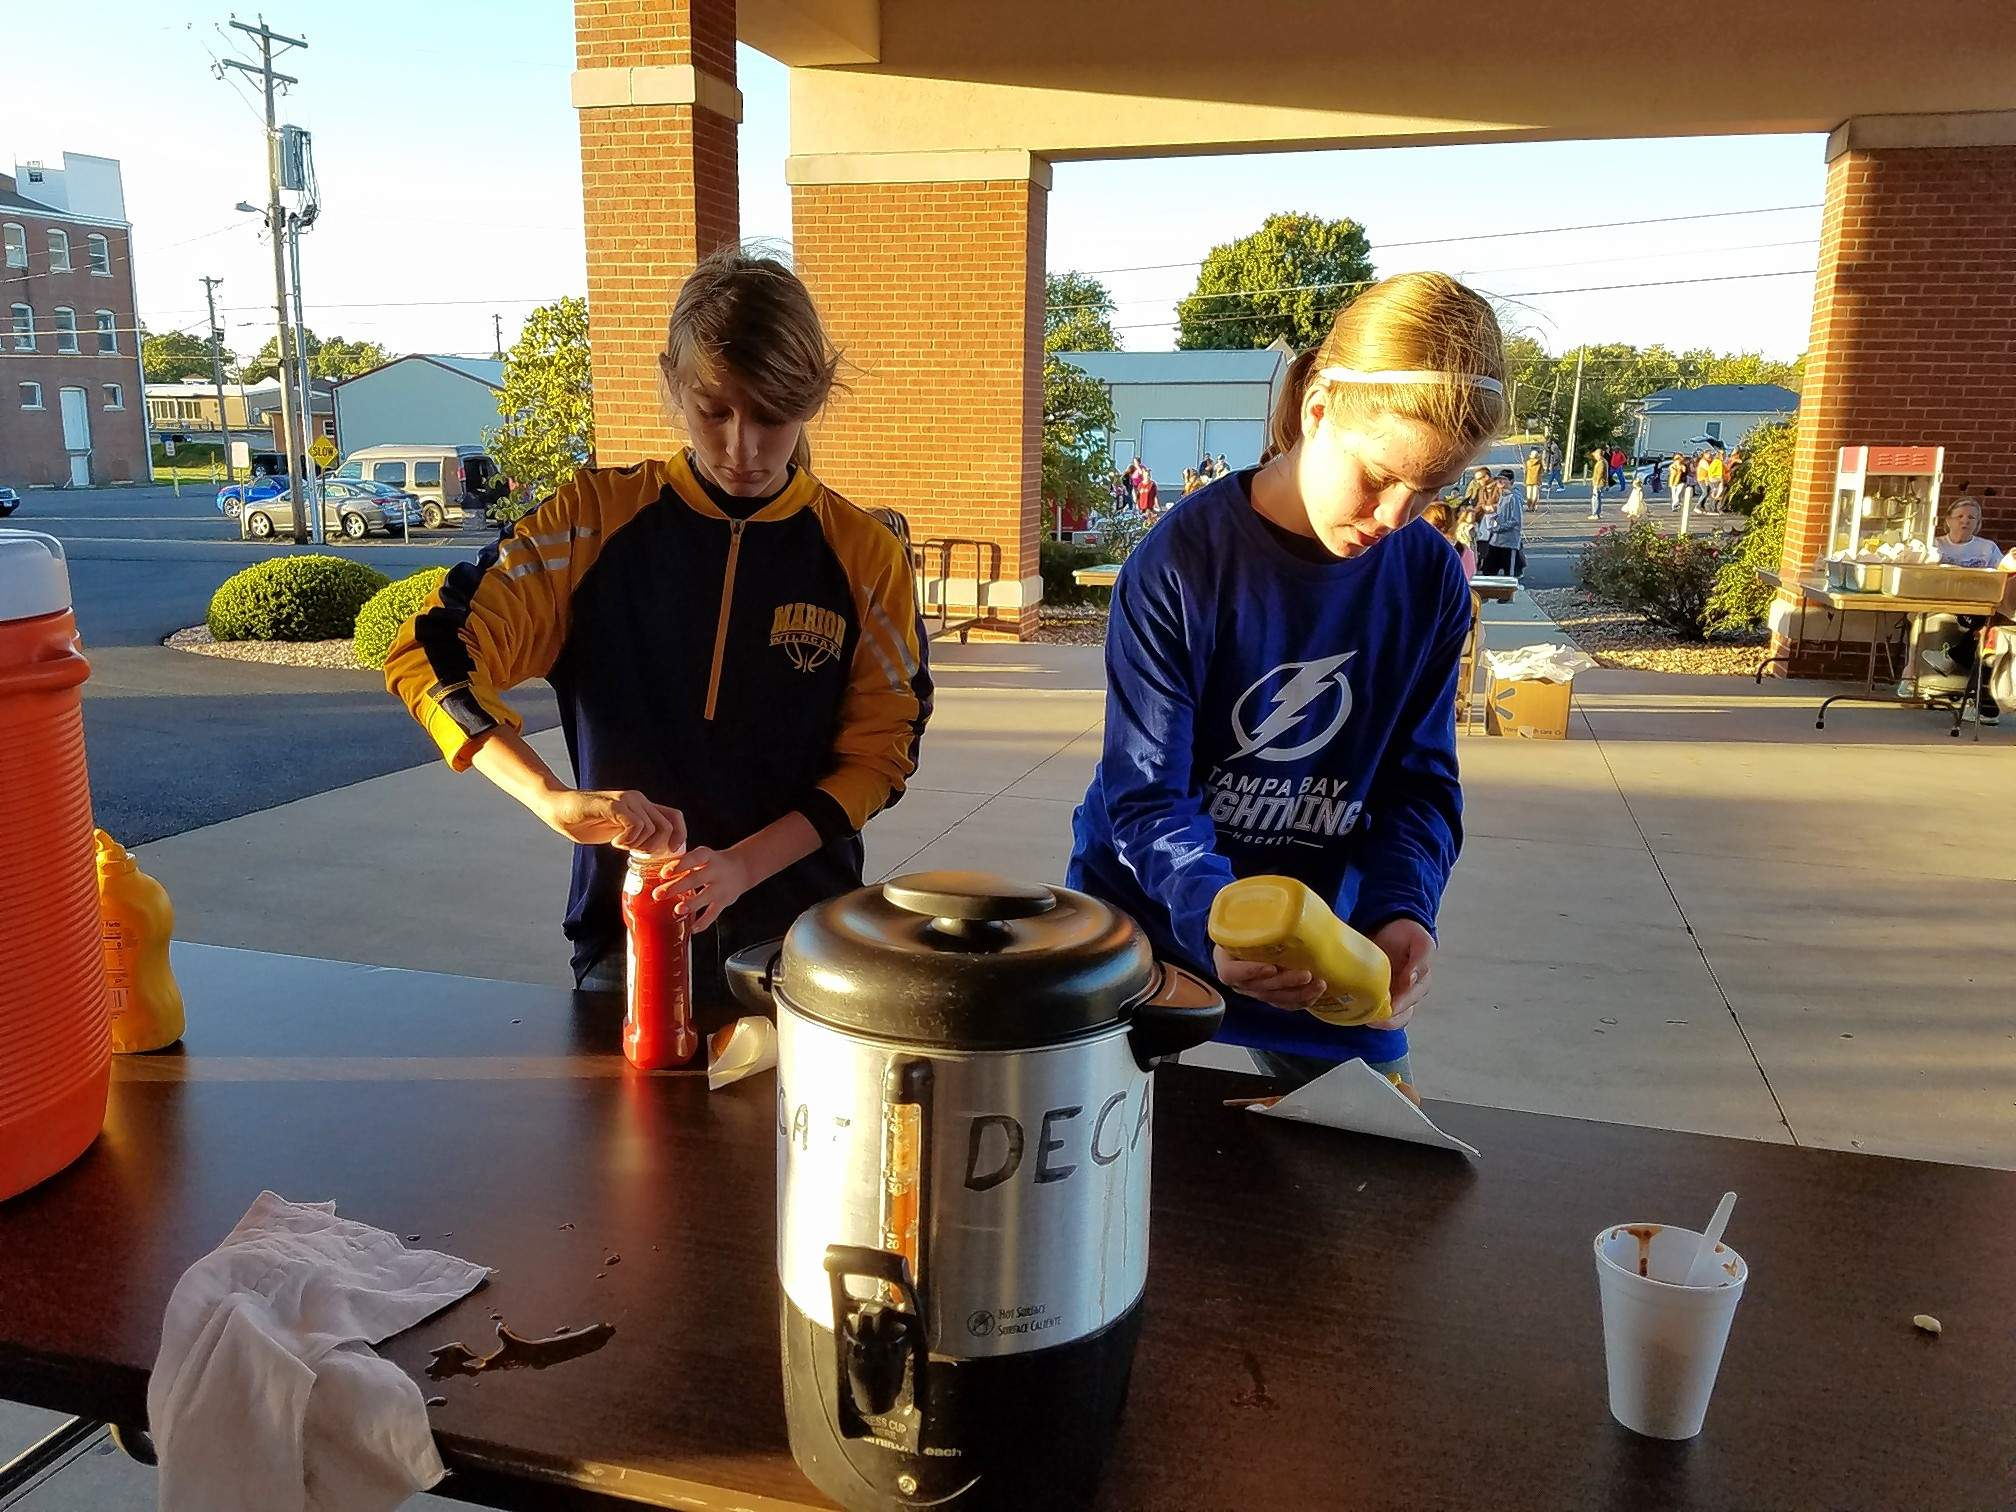 Kamryn Shill, 13, and Alexis Ucci, 13, both seventh-graders at Marion Junior High School, get condiments for their corn dogs and chili at the annual Halloween celebration at the First Baptist Church of Marion Saturday.